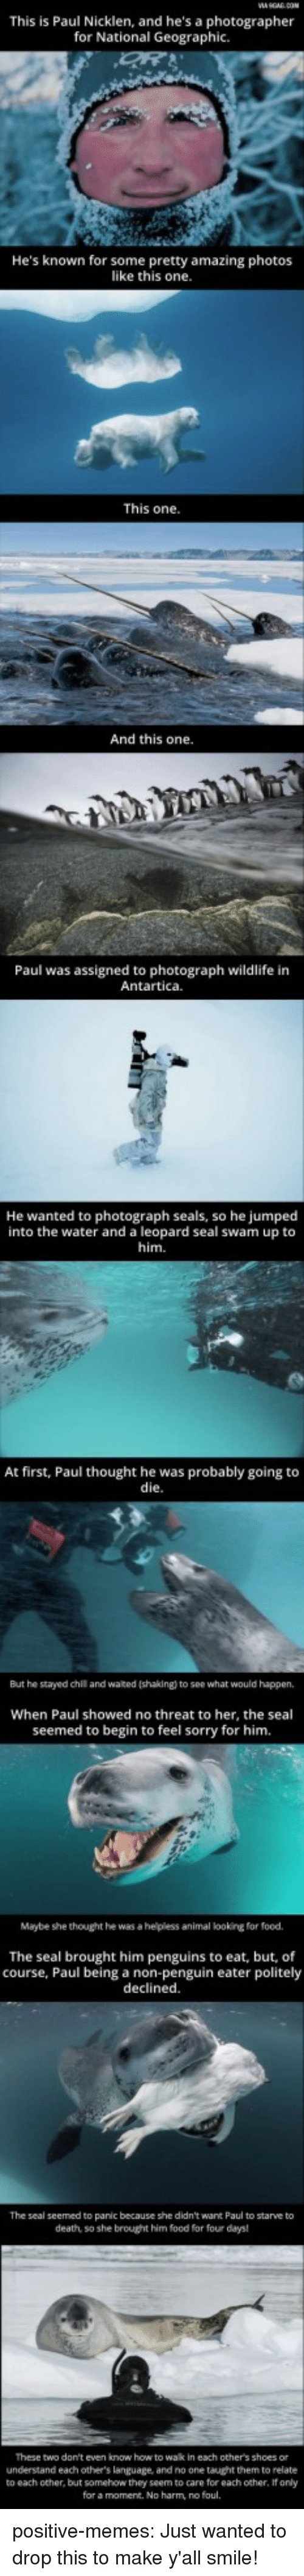 Food, Memes, and Shoes: This is Paul Nicklen, and he's a photographer  for National Geographic.  He's known for some pretty amazing photos  like this one  This one  And this one.  Paul was assigned to photograph wildlife in  Antartica.  He  wanted to photograph seals, so he jumped  into the water and a leopard seal swam up to  him.  At first, Paul thought he was probably going to  die  But he stayed chil and waited (shaking) to see what would happen,  When Paul showed no threat to her, the seal  seemed to begin to feel sorry for him.  Maybe she thought he was a helpless animal looking for food.  The seal brought him penguins to eat, but, of  course, Paul being a non-penguin eater politely  declined.  The seal seemed to panic because she didn't want Paul to starve to  death, so she brought him food for four days  These two don't even know how to wak in each other's shoes or  understand each others language, and no one taught them to relate  to each other, but somehow they seem to care for each other, If only  for a moment. No harm, no foul. positive-memes:  Just wanted to drop this to make y'all smile!